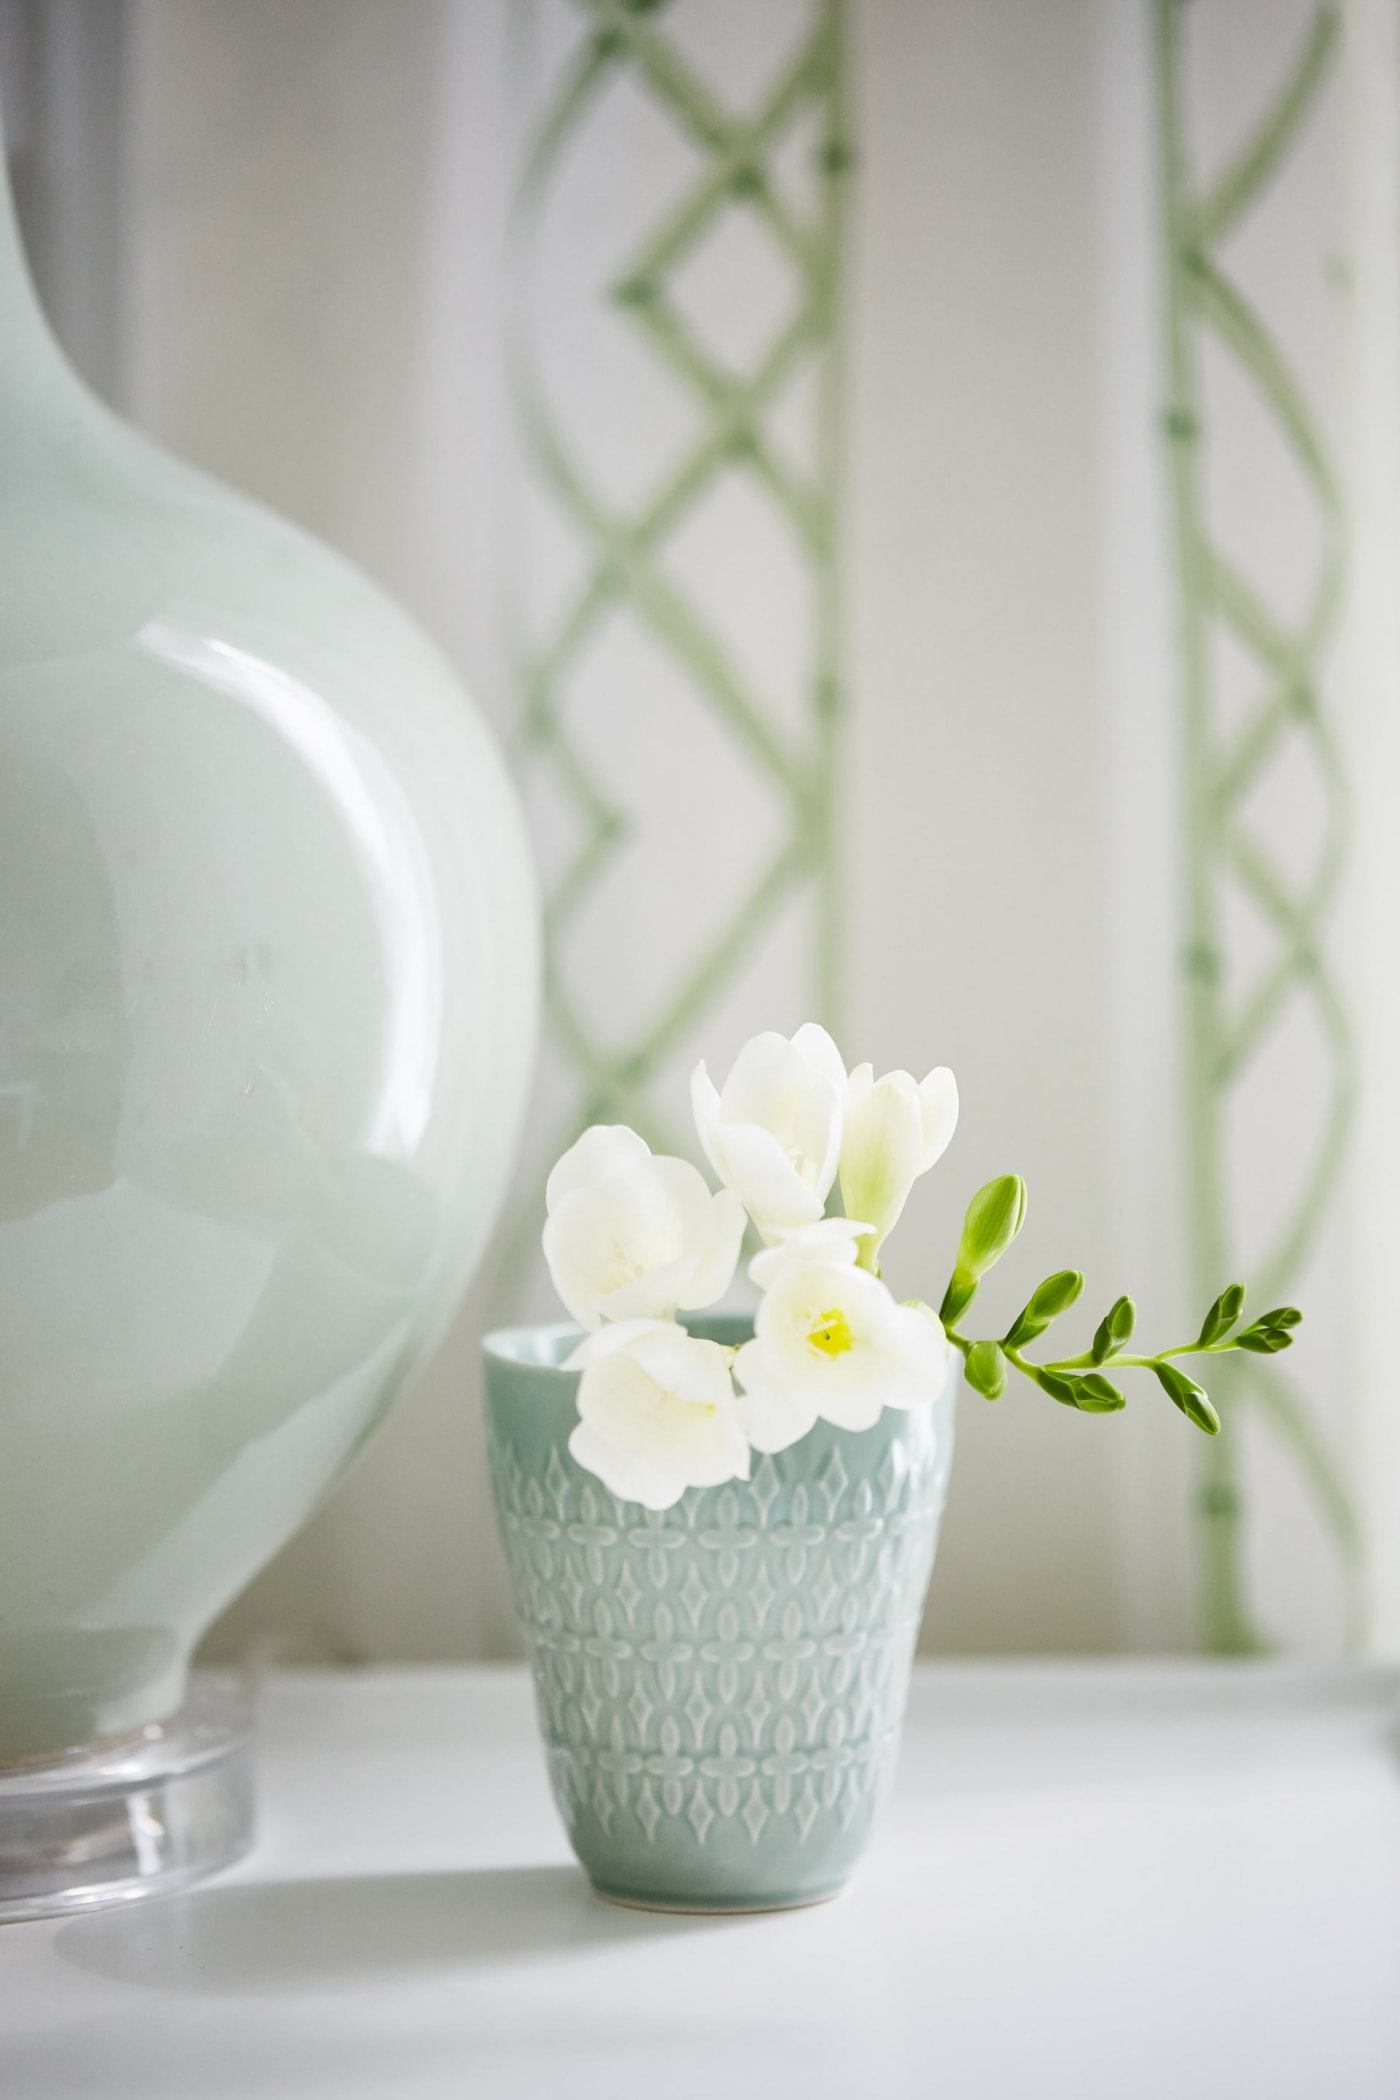 Beautiful aqua blue vase with white flowers and mint green lamp